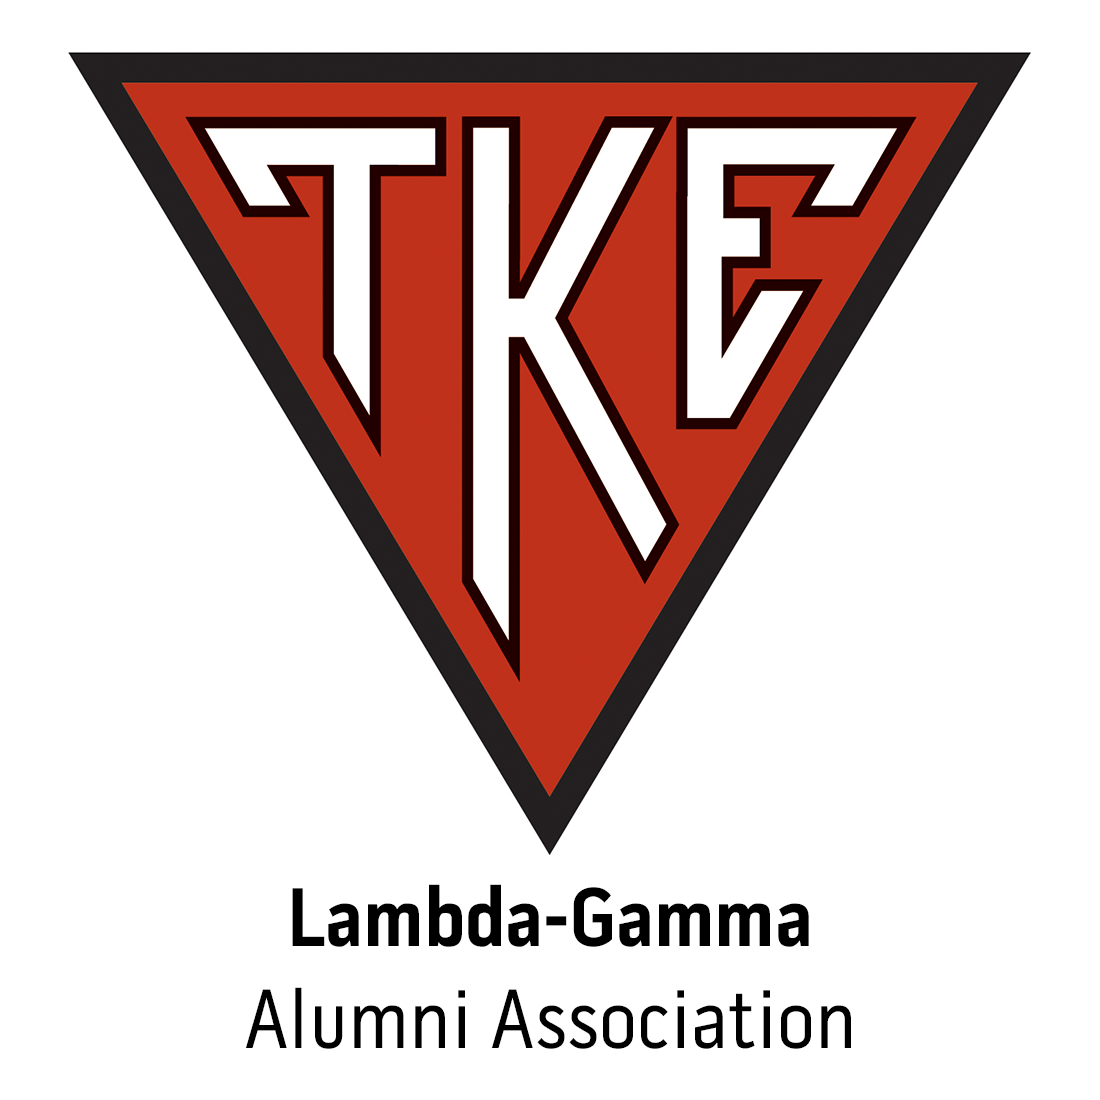 Lambda-Gamma Alumni Association for University of Cincinnati